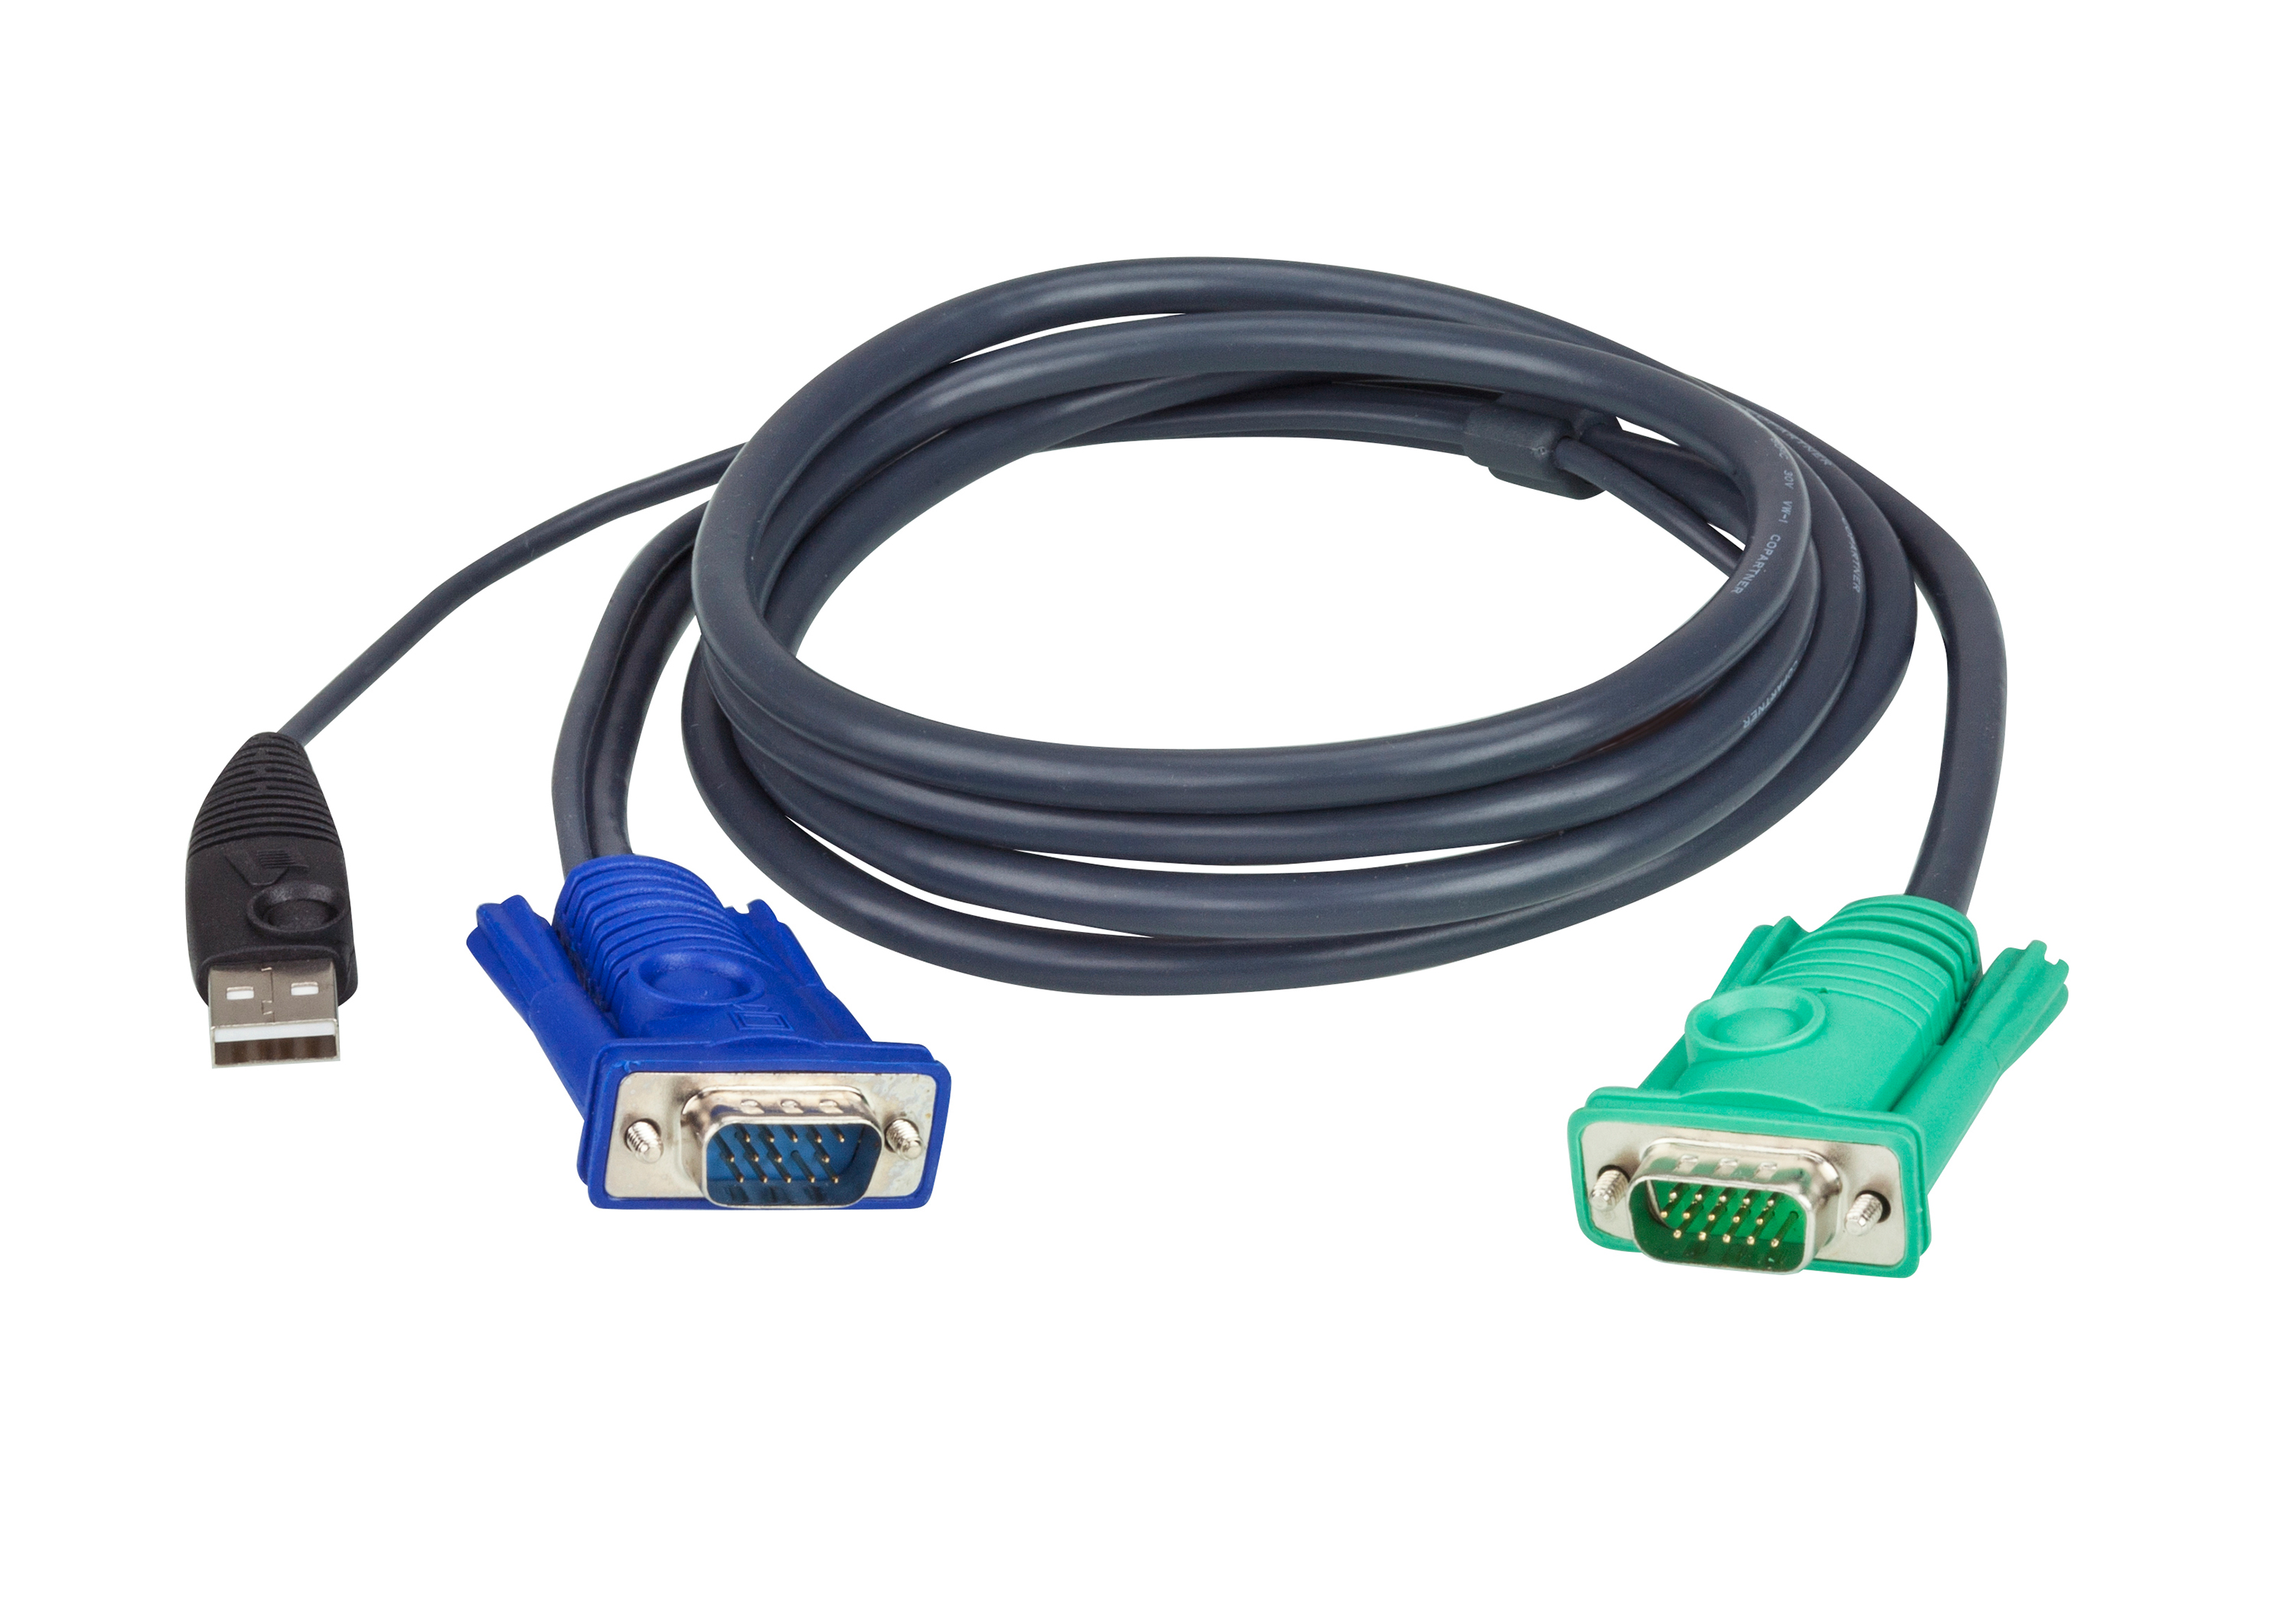 1.2M USB KVM Cable with 3 in 1 SPHD-1